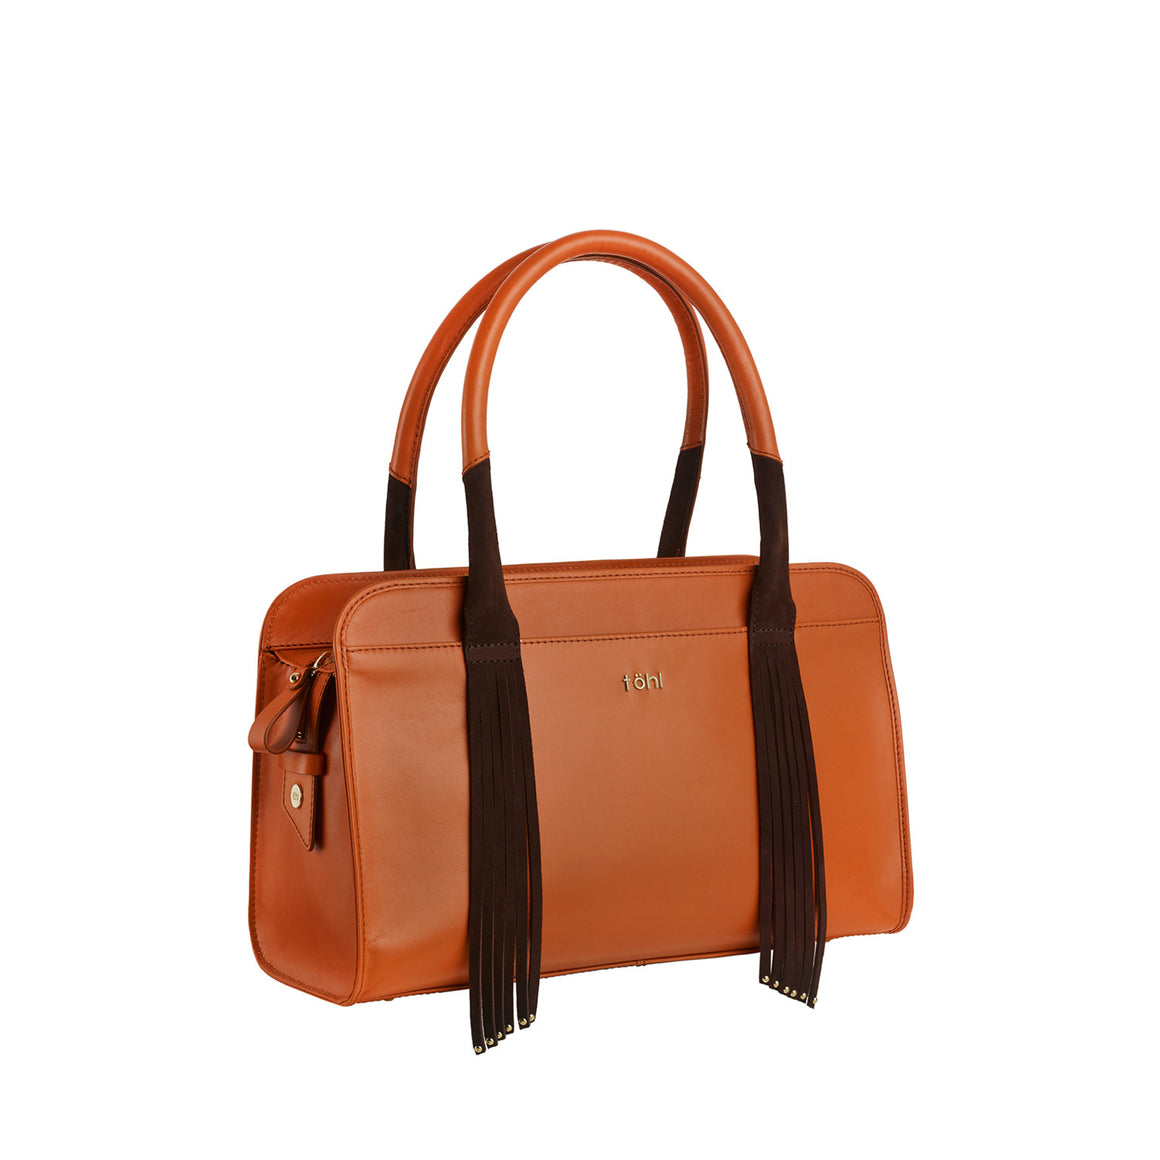 SB 0012 - TOHL TAMARA WOMEN'S DAY BAG - COGNAC